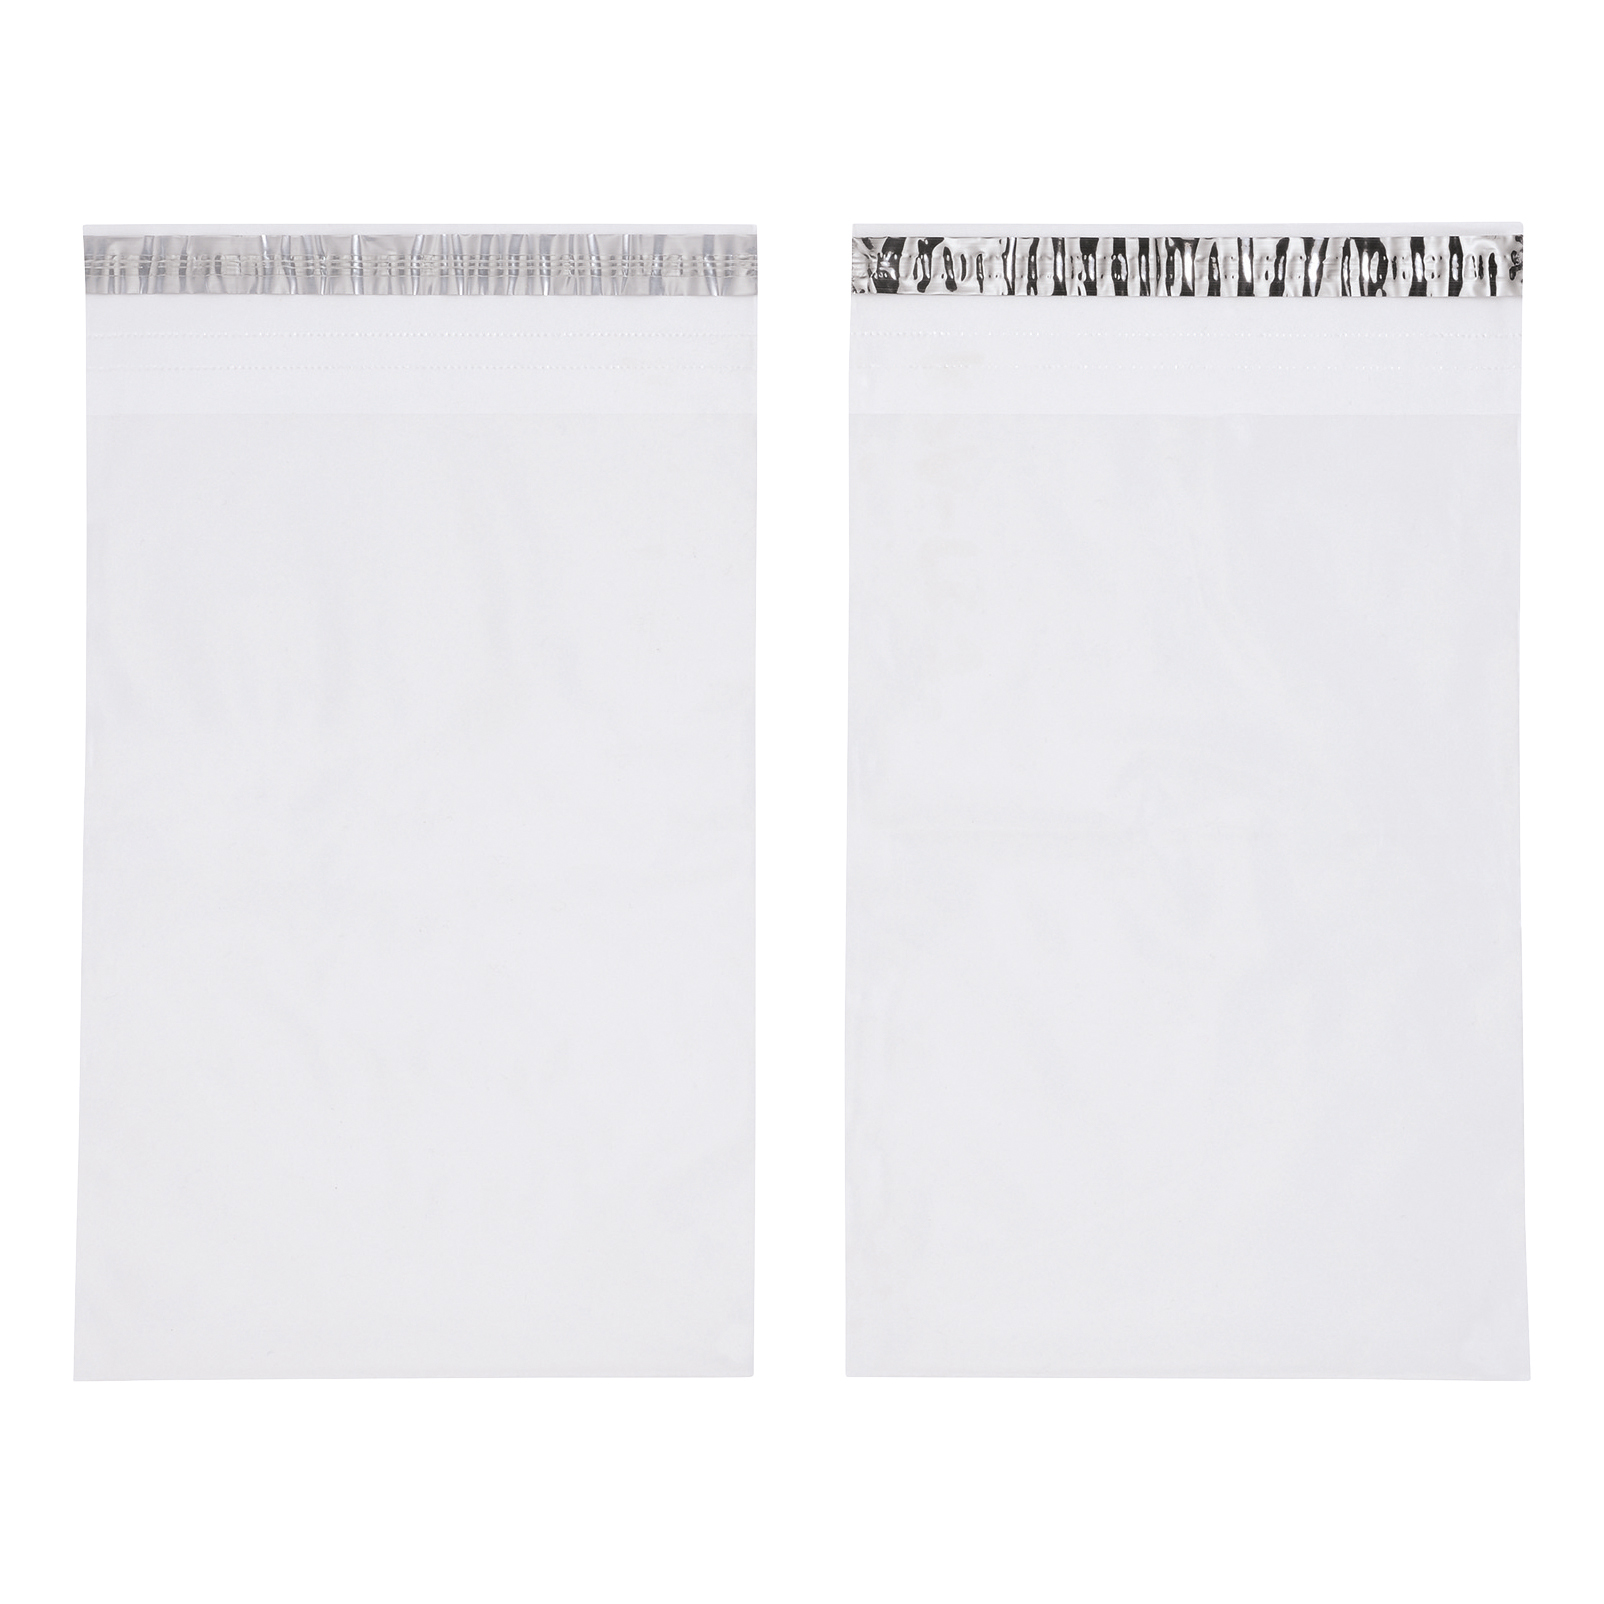 C4 Keepsafe LightWeight Envelope Clear No Print C4 W235xH310mm Peel&Seal Ref KSV-LC2 Pack 100